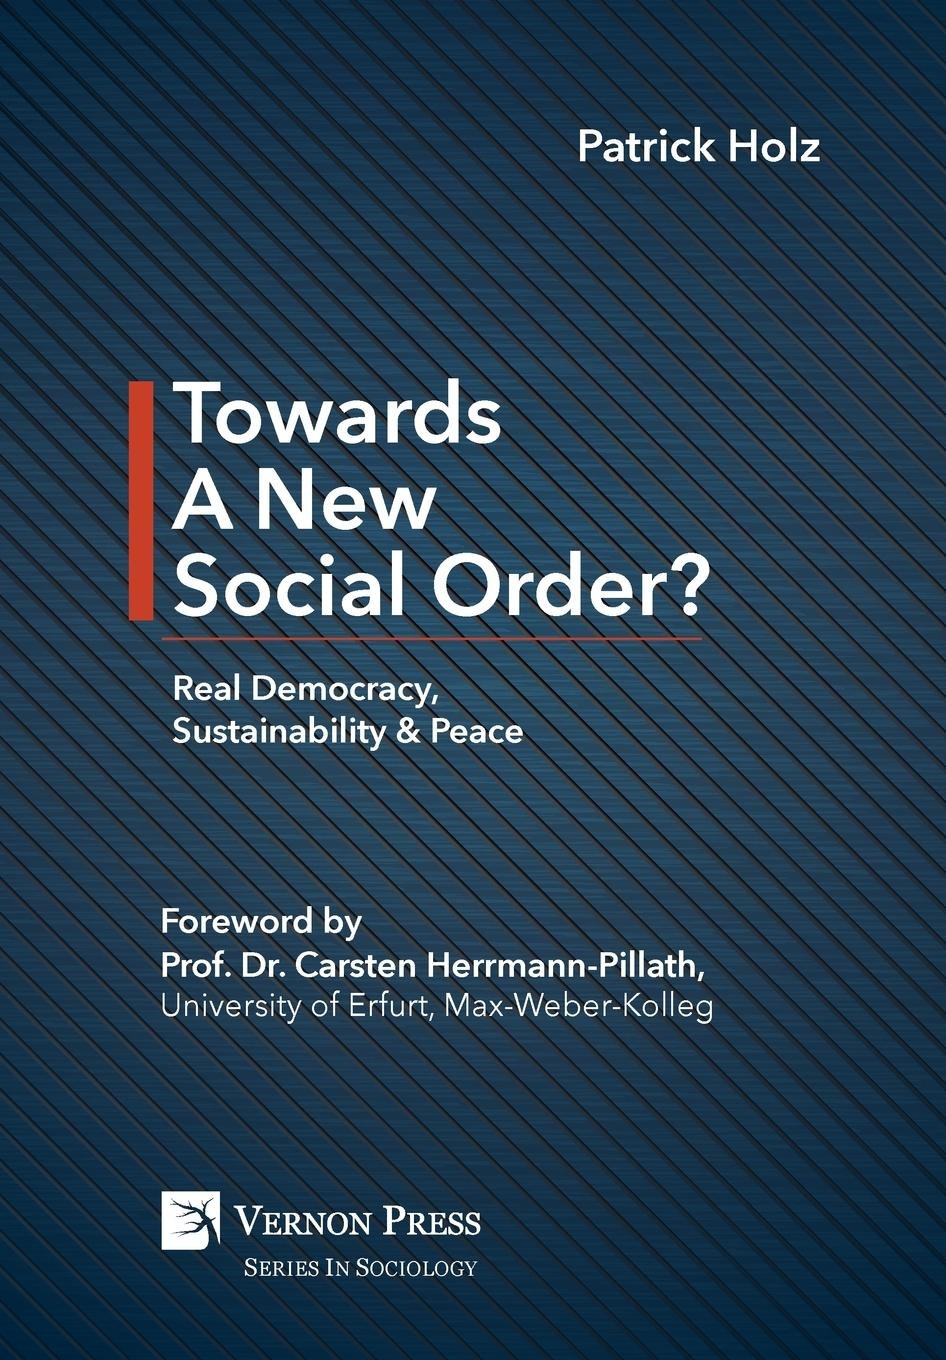 Towards A New Social Order? Real Democracy, Sustainability & Peace (Series in Sociology) pdf